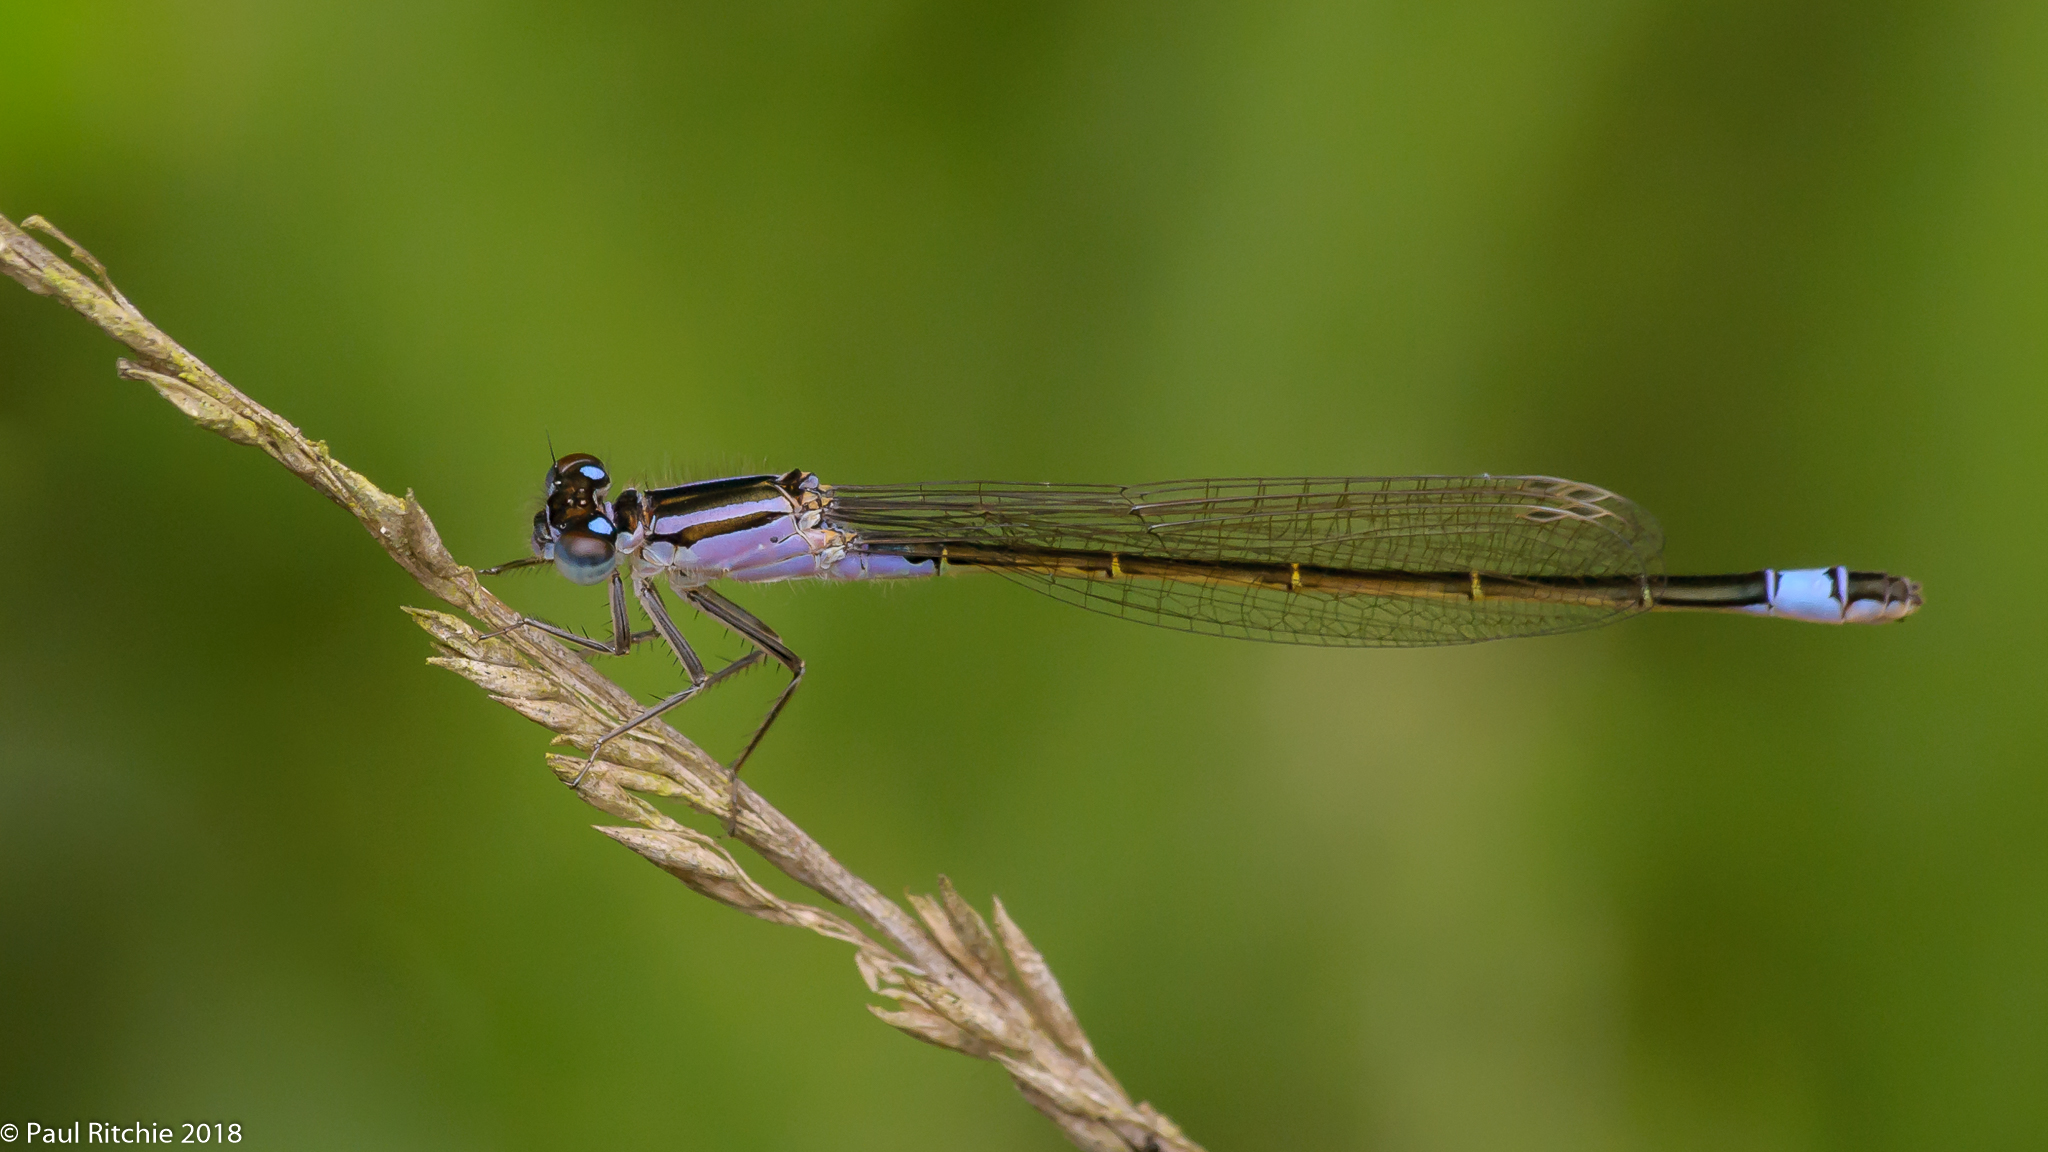 Blue-tailed Damselfly (Ischnura elegans) - female violacea form